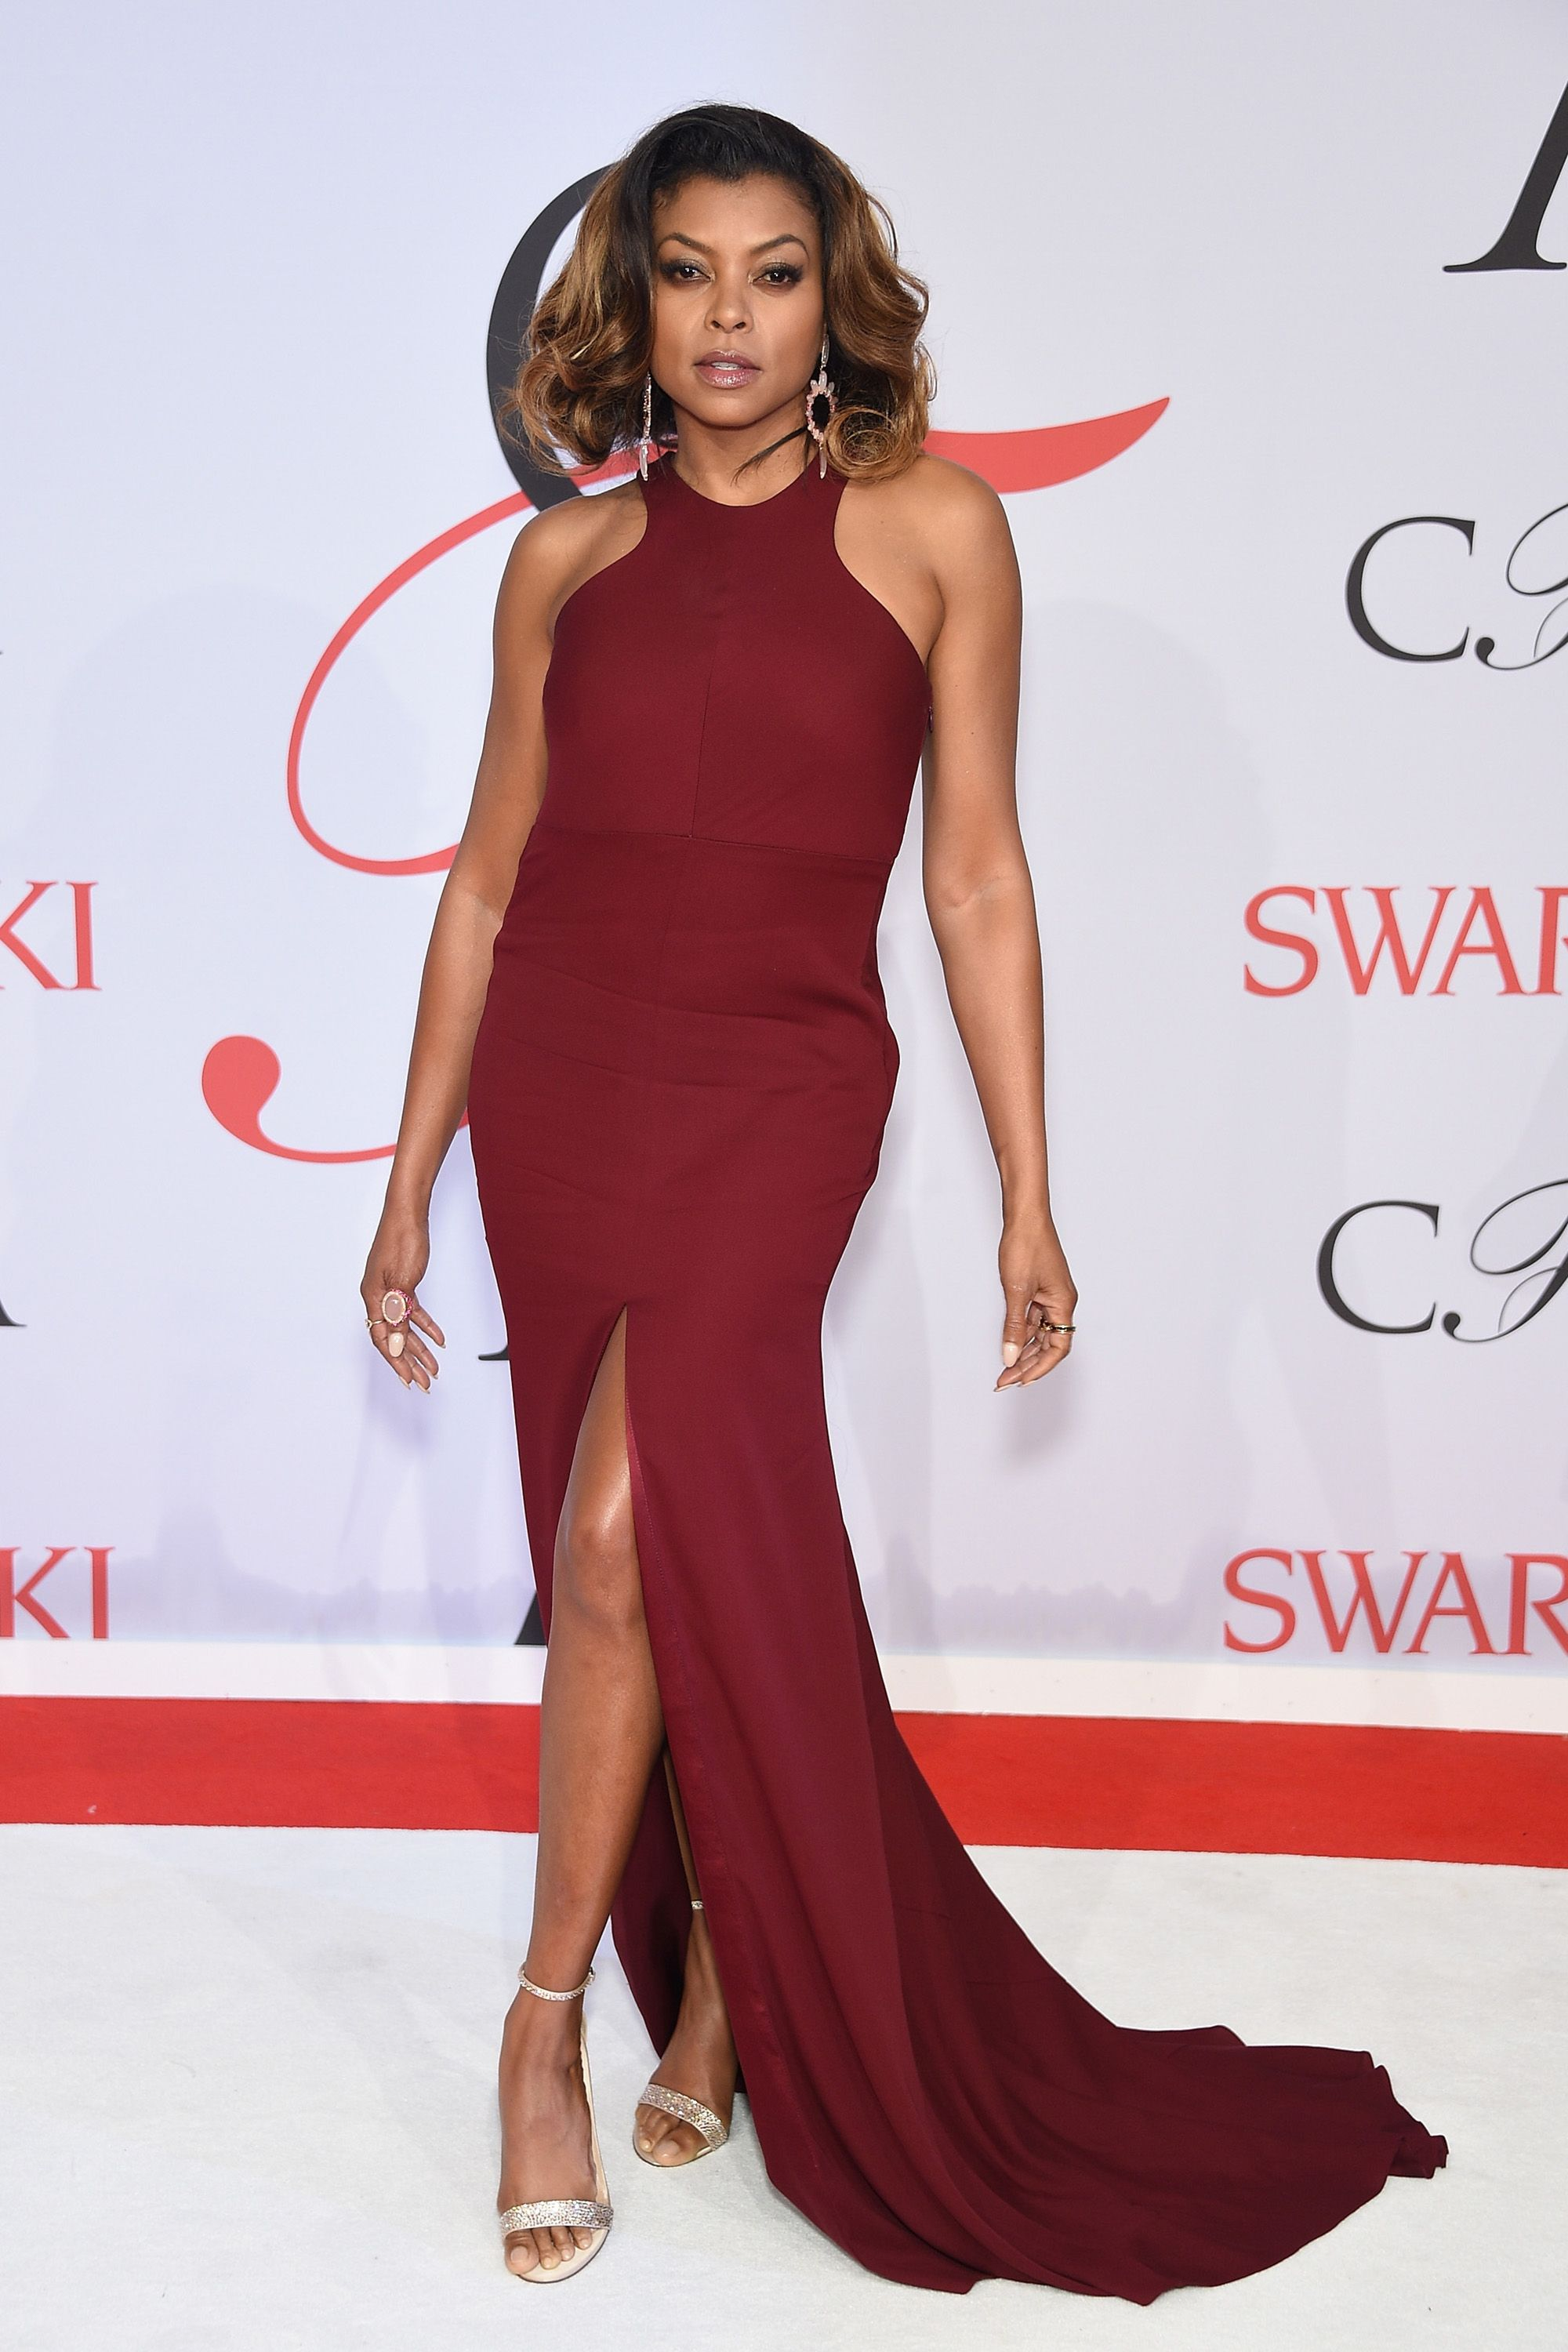 CFDA Awards 2015: See all the red carpet pics CFDA Awards 2015: See all the red carpet pics new foto